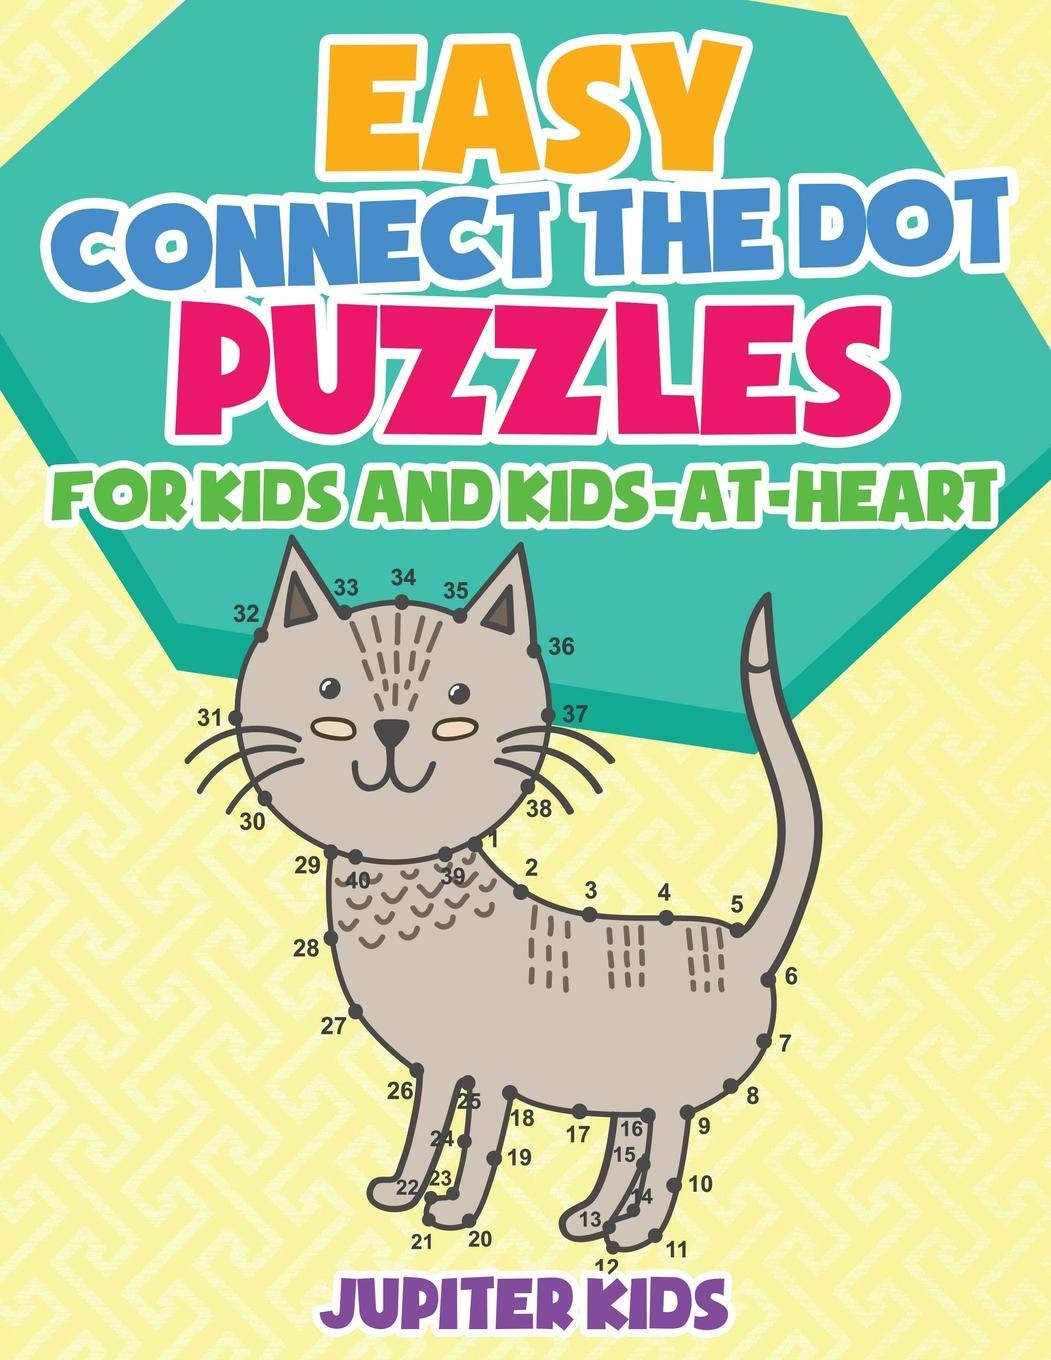 Download Easy Connect the Dot Puzzles for Kids and Kids-at-Heart pdf